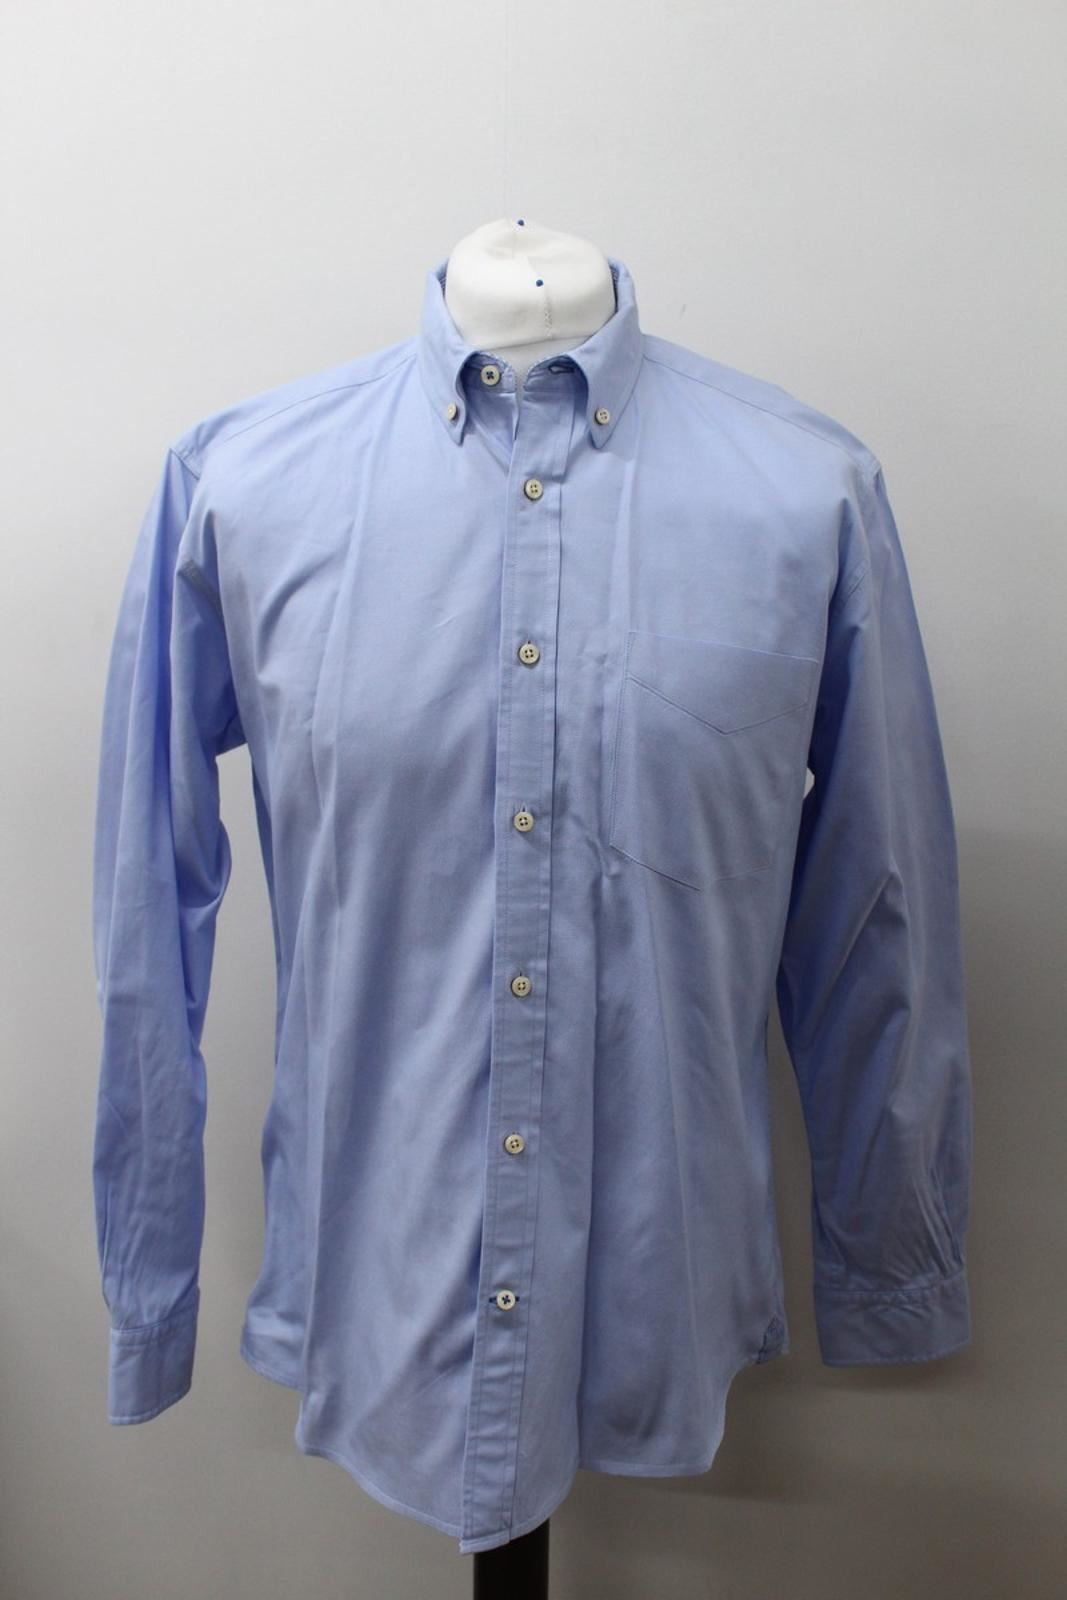 T-M-LEWIN-Men-039-s-Blue-Cotton-Long-Sleeve-Collared-Side-Pocket-Casual-Shirt-L